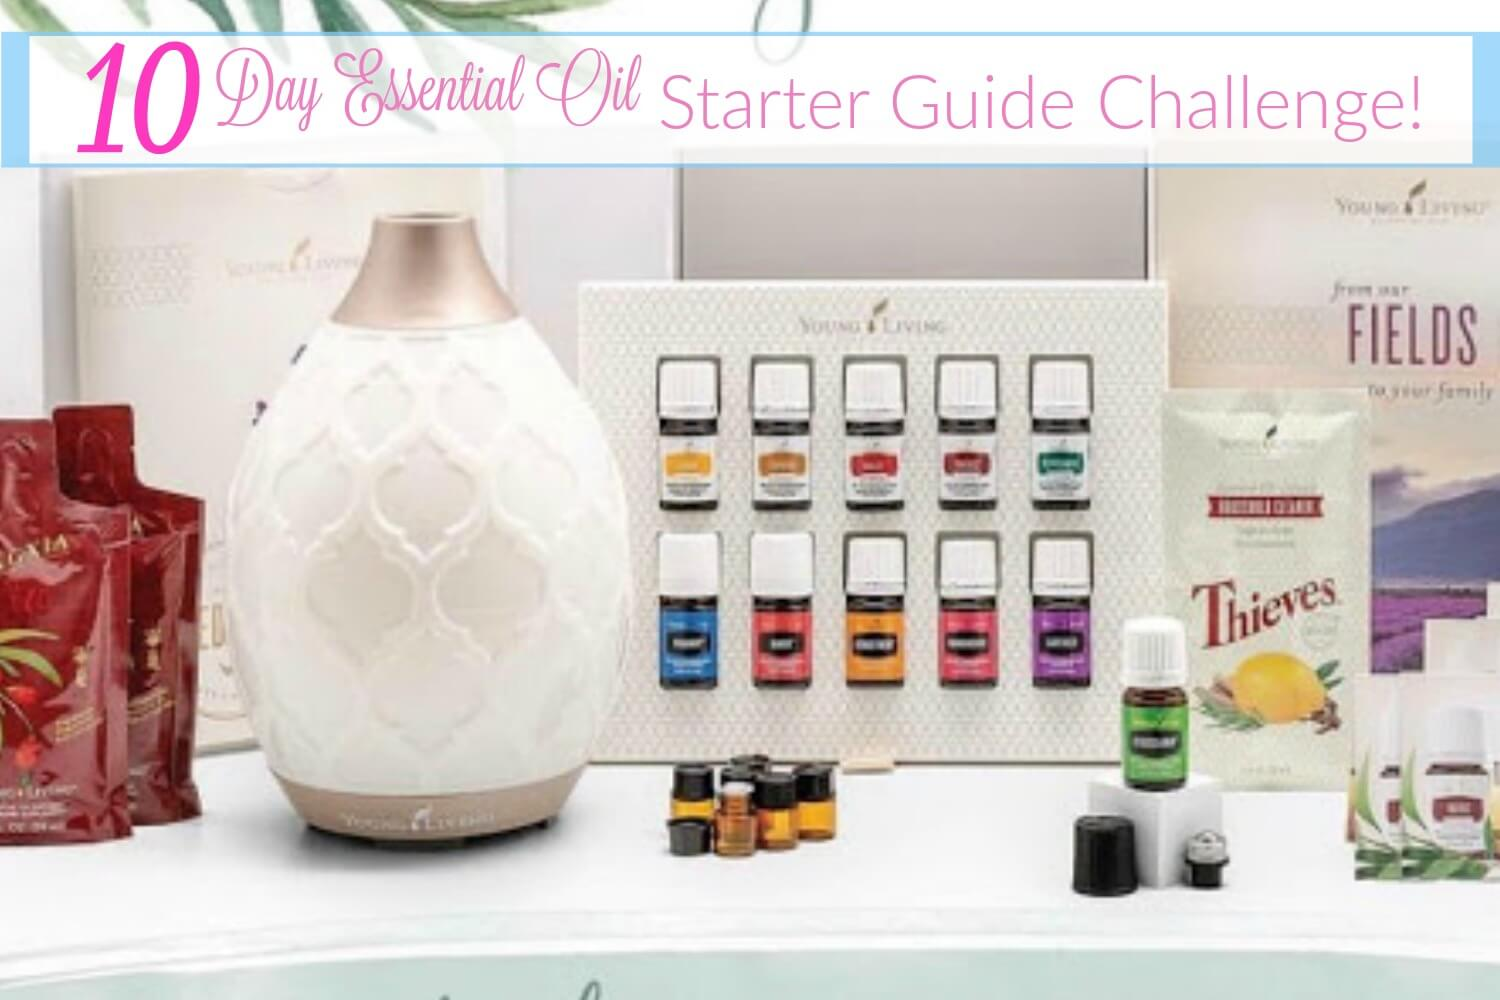 10 Day Essential Oil Starter Guide Challenge!